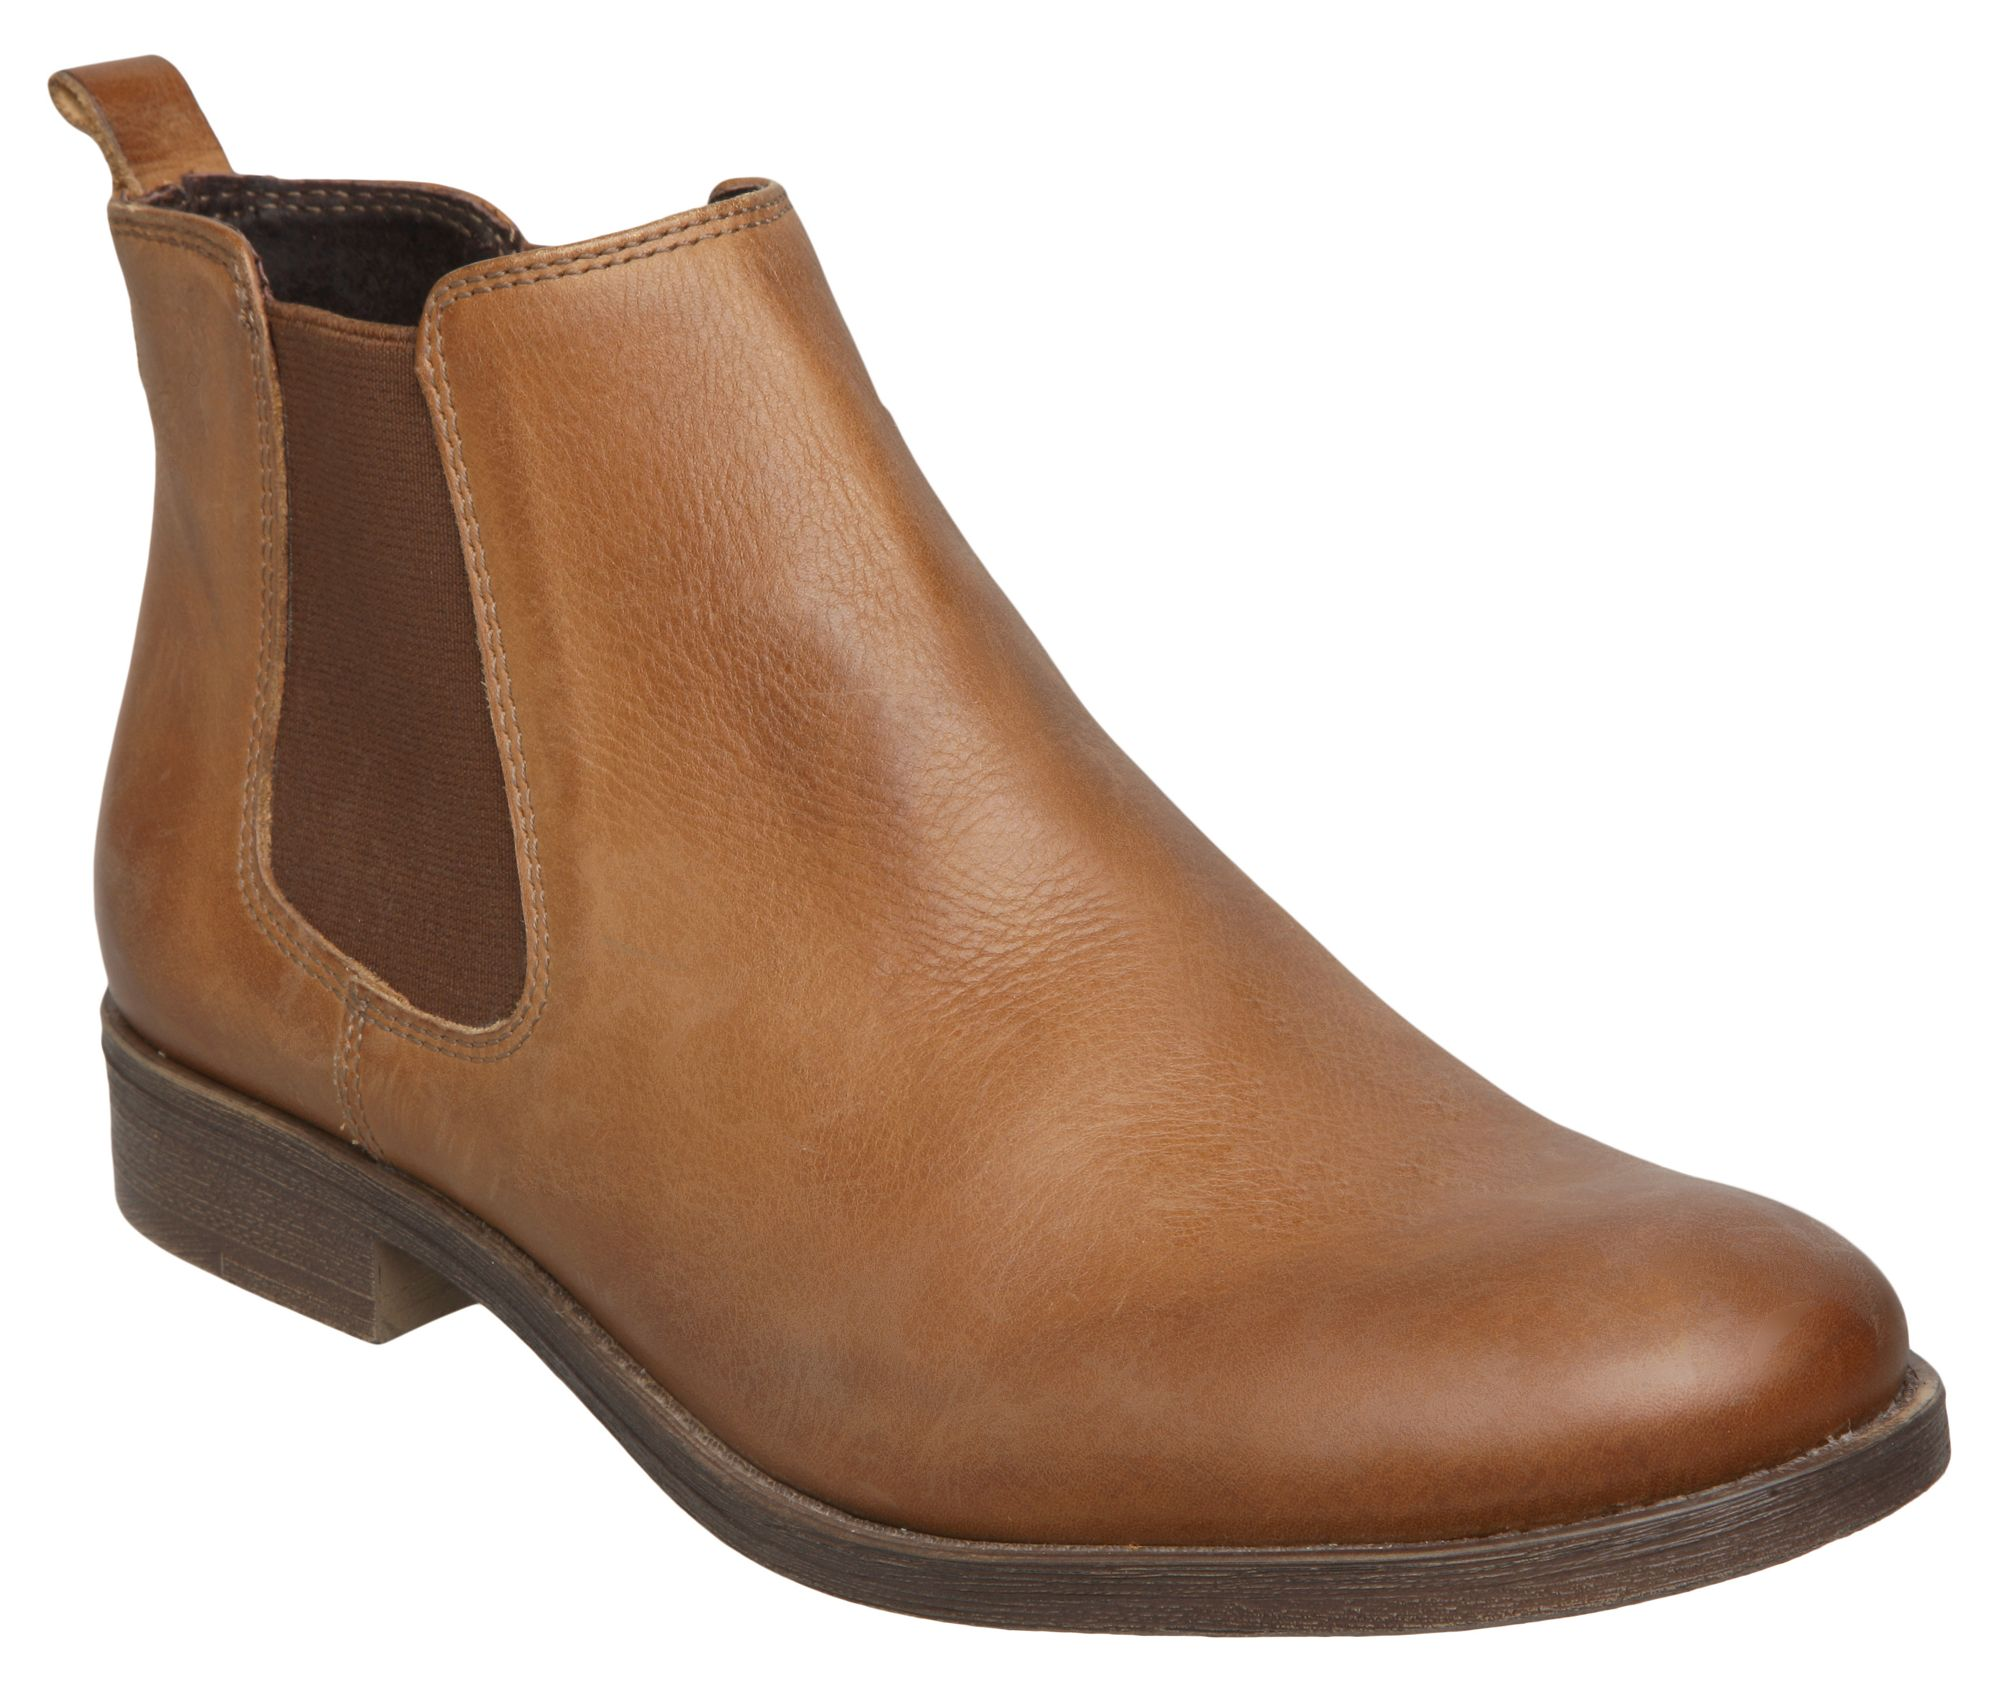 Wonderful Paul Green Chelsea Ladies39 Tan Leather Ankle Boots  Paul Green From